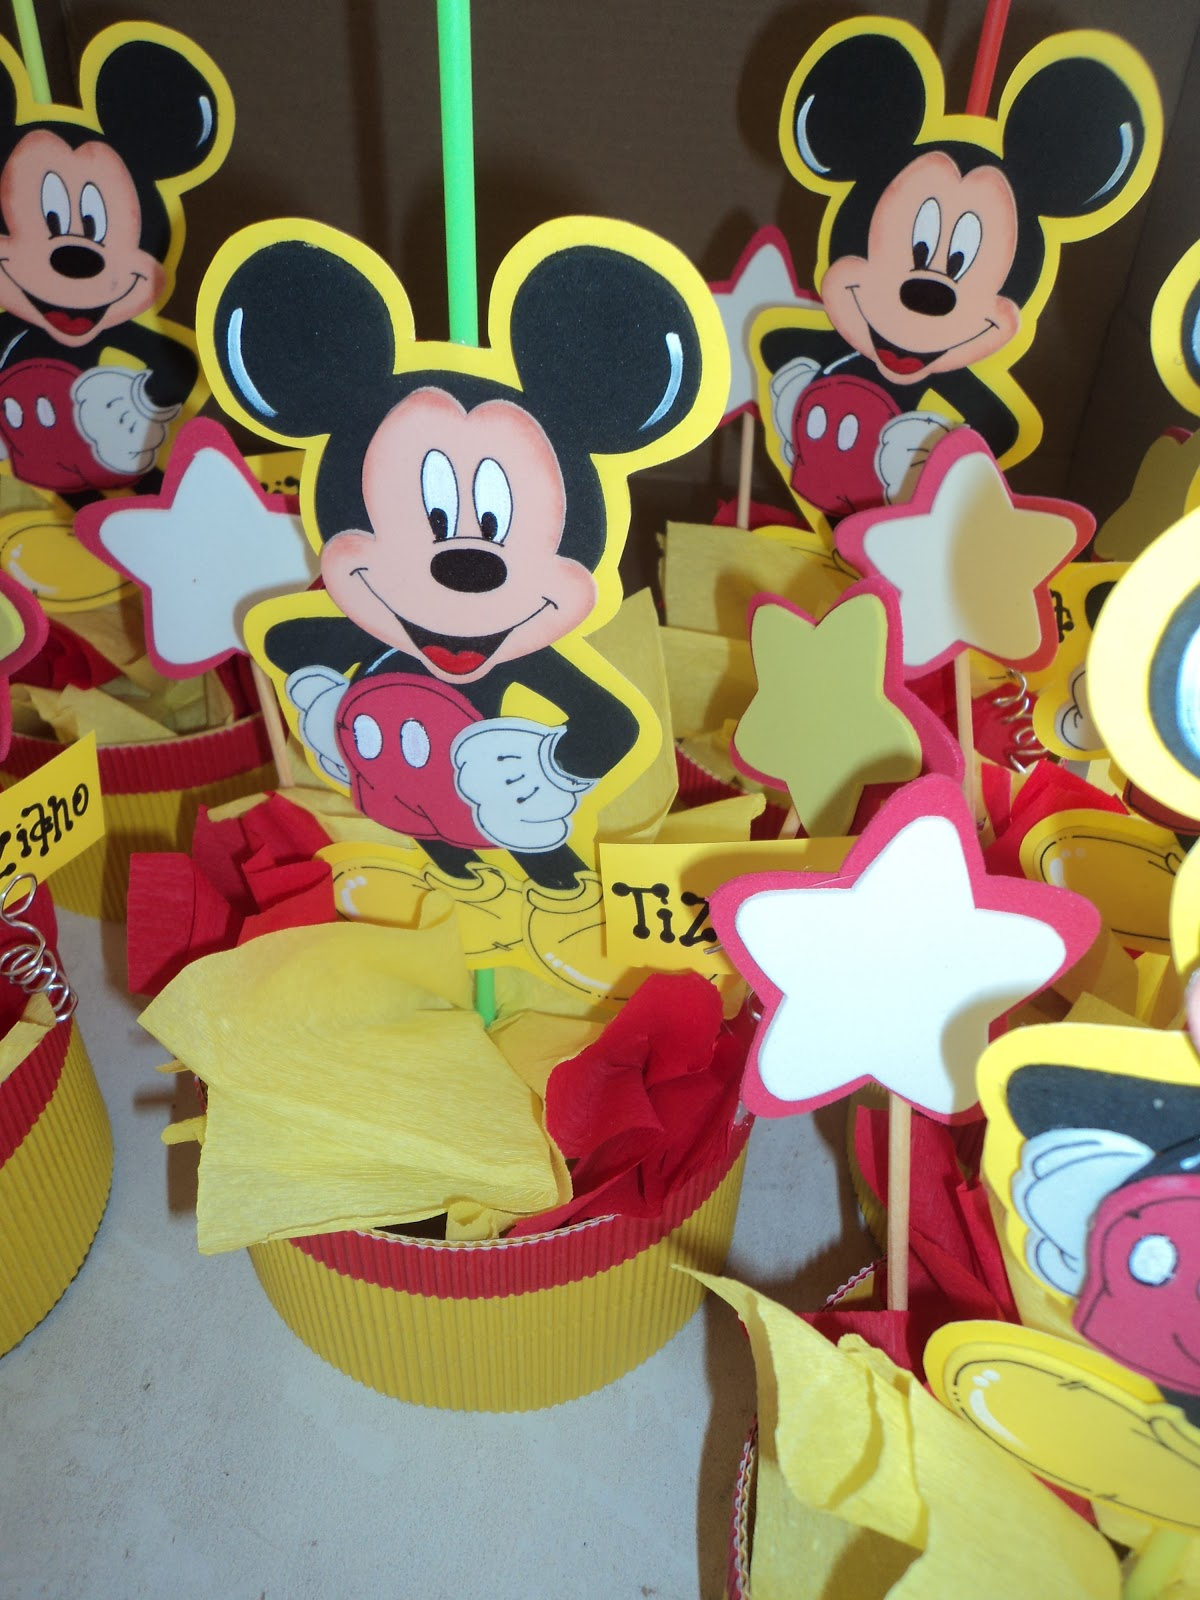 Your WDW Store - Disney Collectibles & Limited Edition